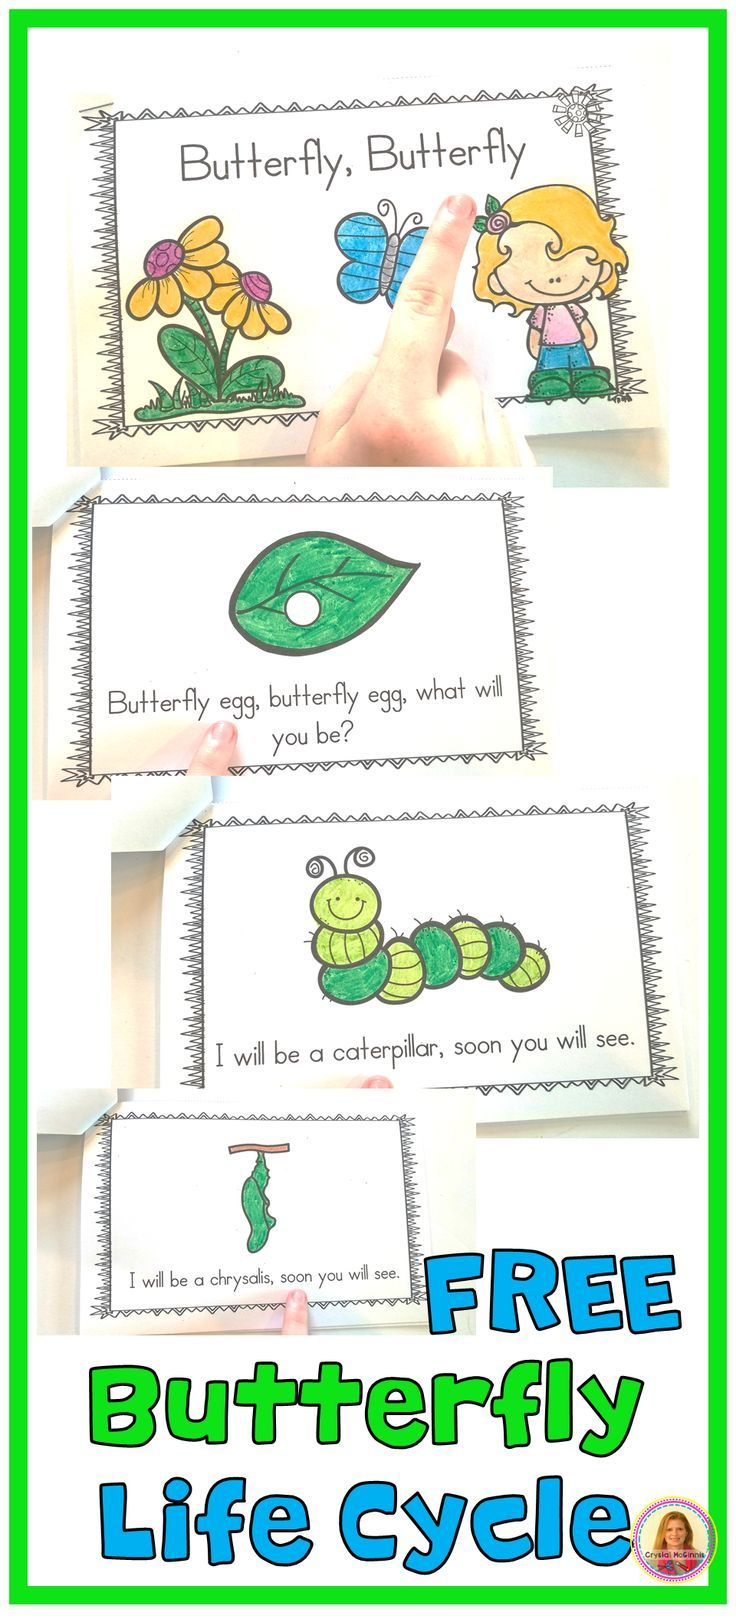 Predownload: Free Life Cycle Of A Butterfly Emergent Reader Read Like Brown Bear Bro In 2020 Butterfly Life Cycle Preschool Life Cycles Preschool Butterfly Life Cycle Kindergarten [ 1619 x 736 Pixel ]